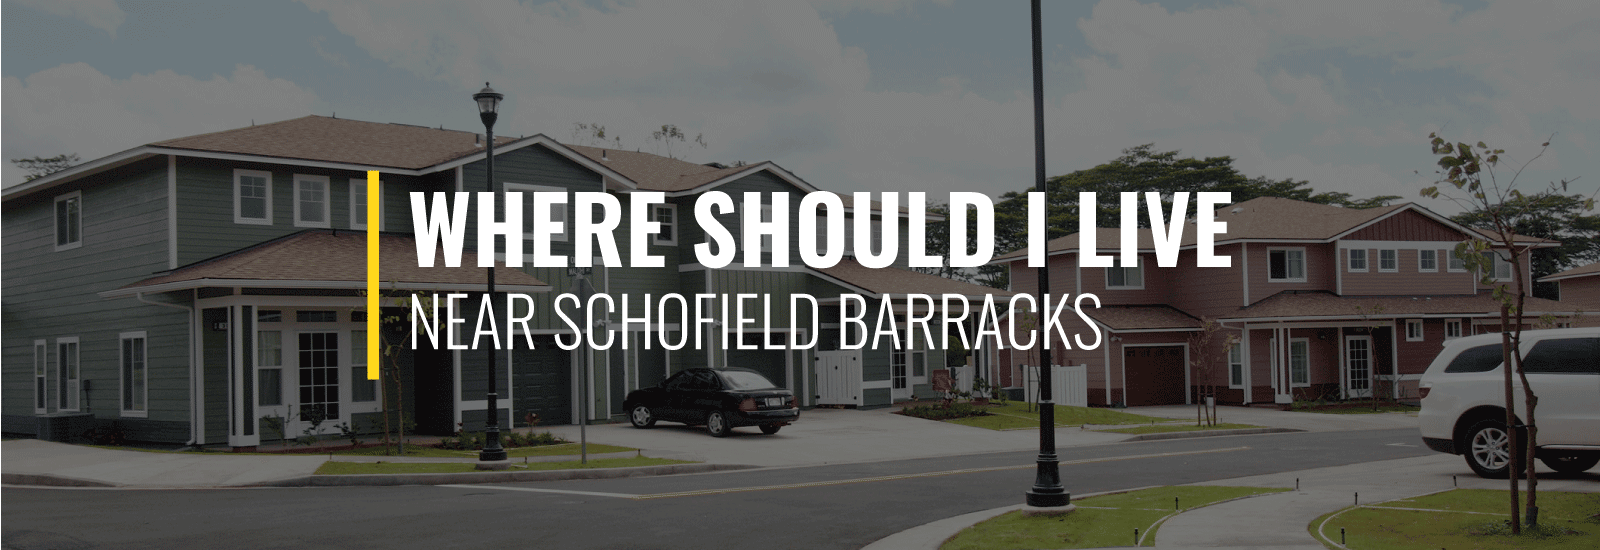 Where Should I Live Near Schofield Barracks?